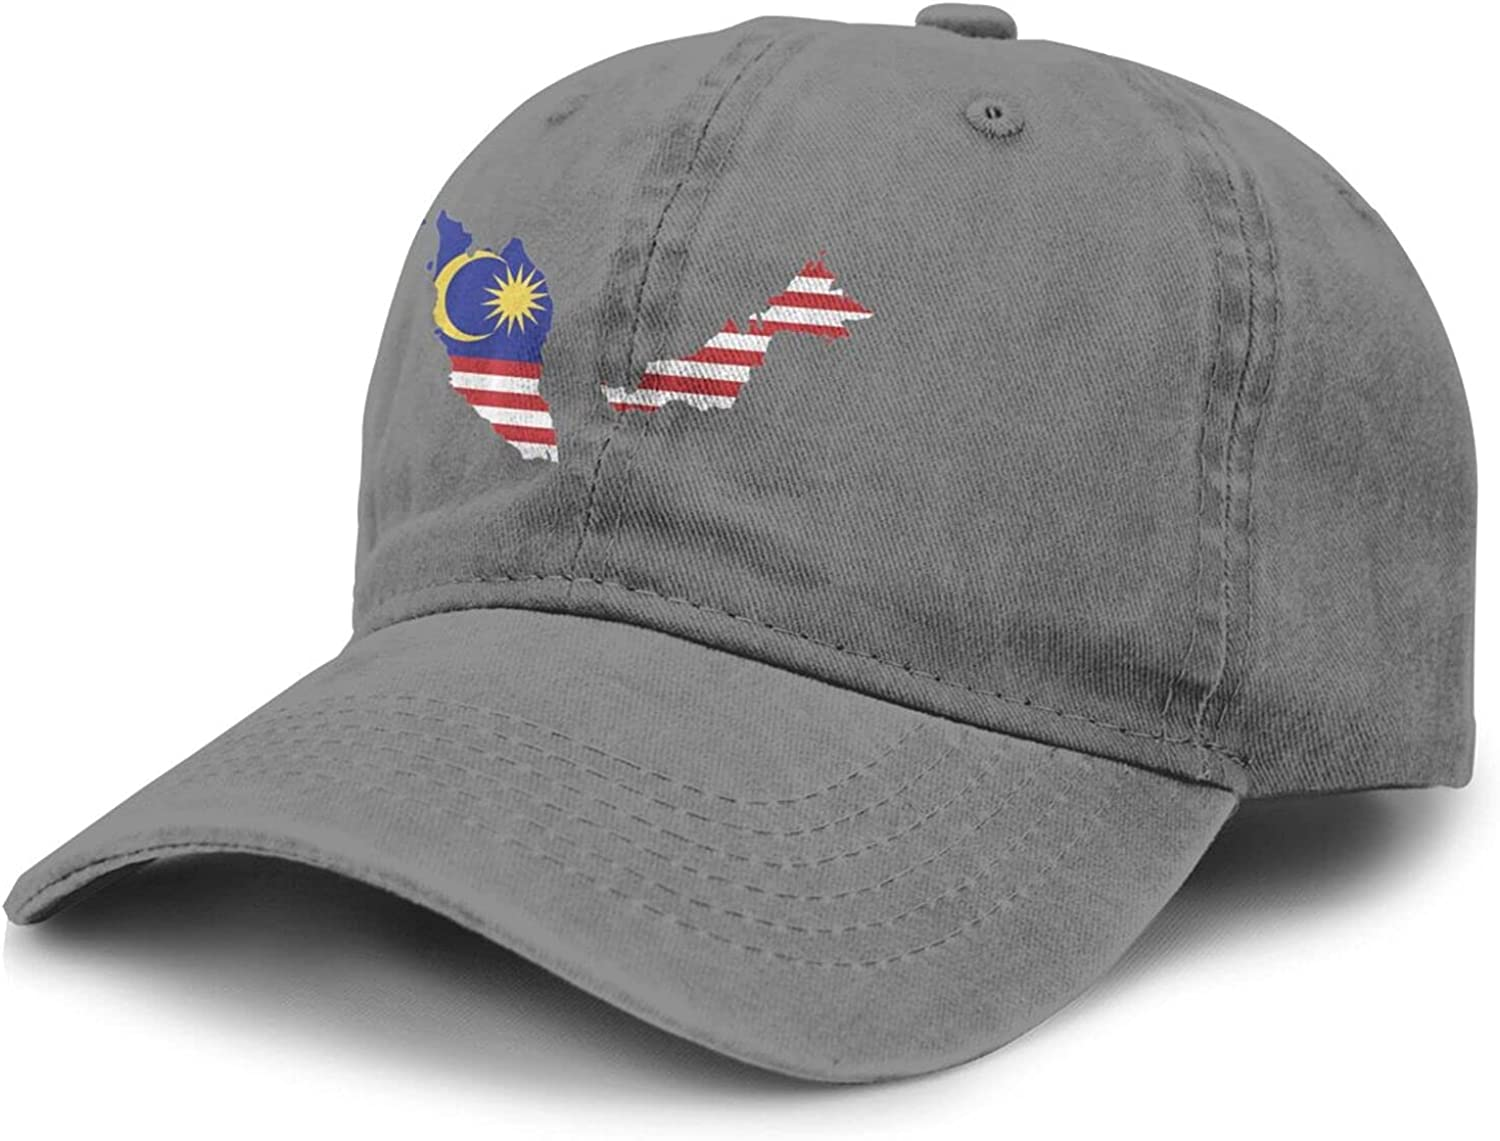 PARKNOTES Malaysia Flag Country of Asia Cheap and Durable Adult Cowboy Hat Unisex